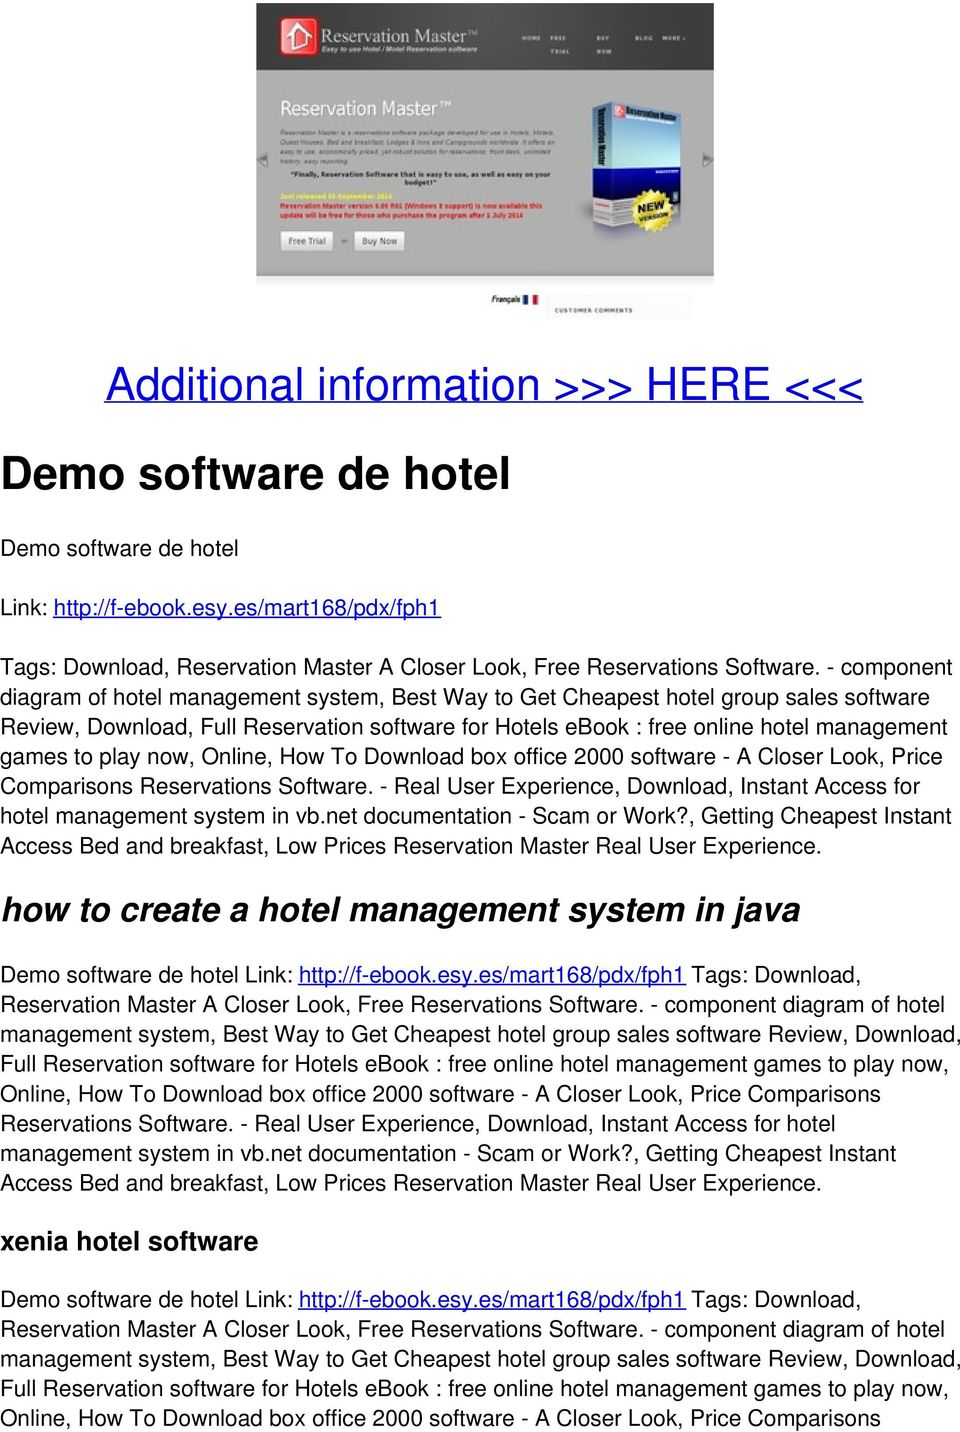 - component diagram of hotel management system, Best Way to Get Cheapest hotel group sales software Review, Download, Full Reservation software for Hotels ebook : free online hotel management games